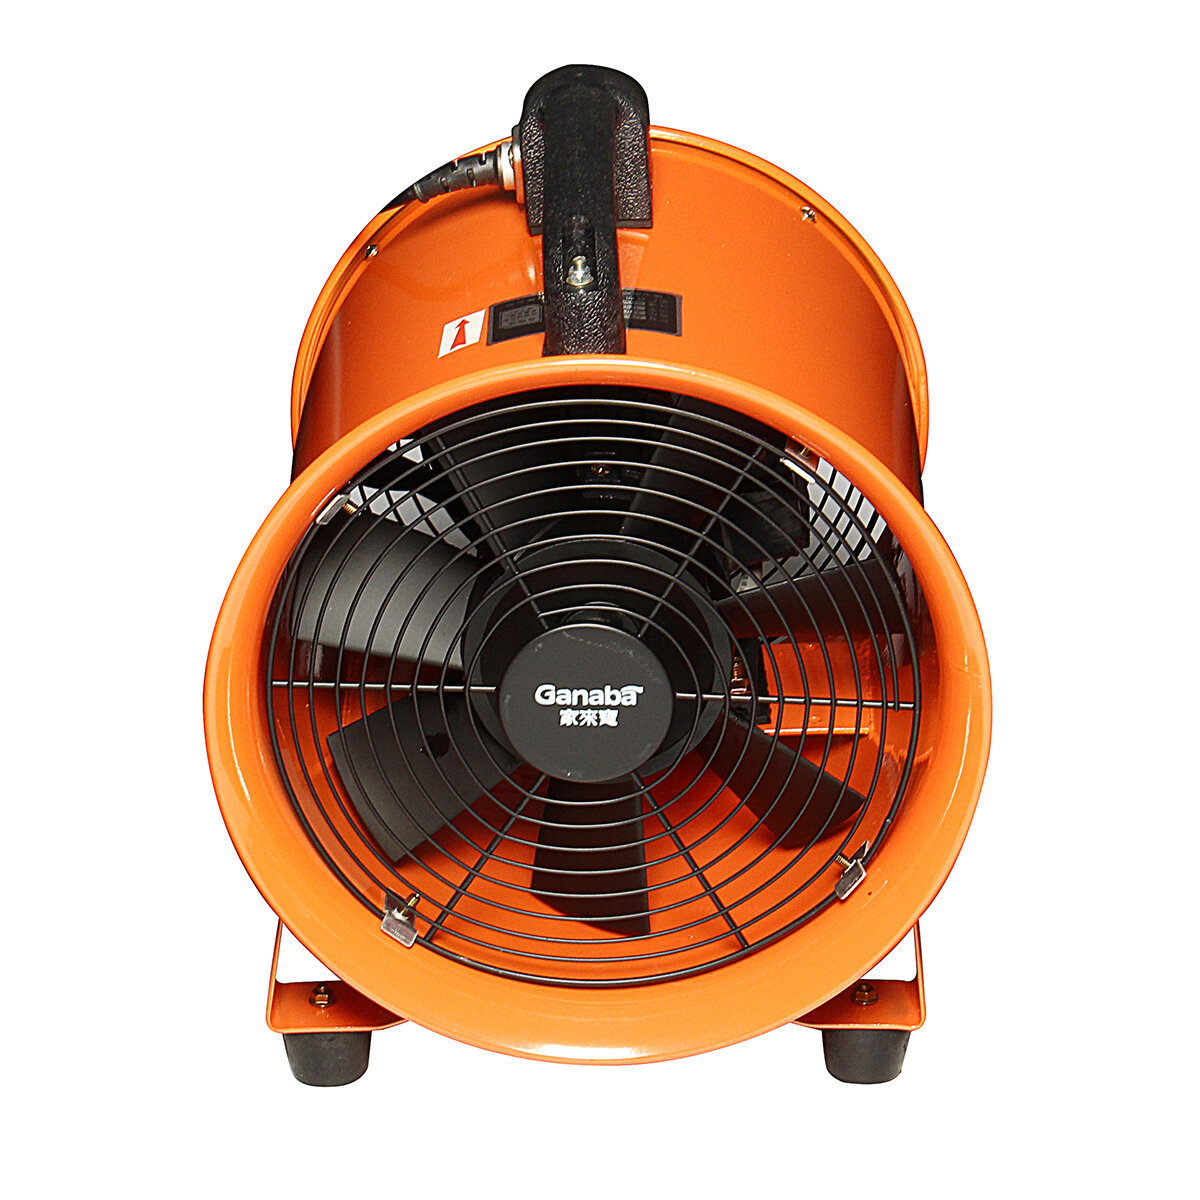 Portable Extractor Fan 10 Inch Portable Blower Ventilator Extractor Industrial Garage High Rotation Fan